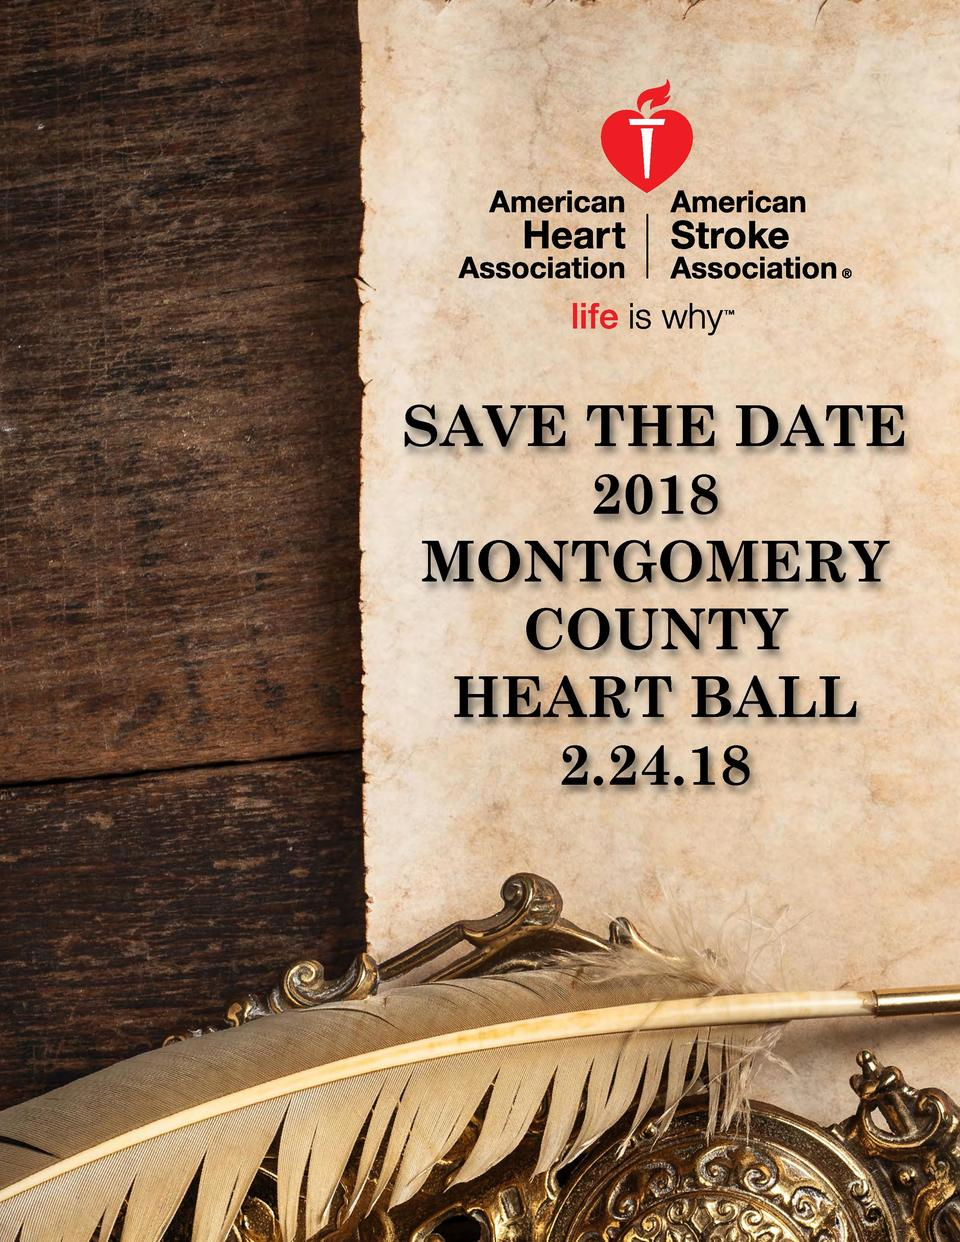 SAVE THE DATE 2018 MONTGOMERY COUNTY HEART BALL 2.24.18